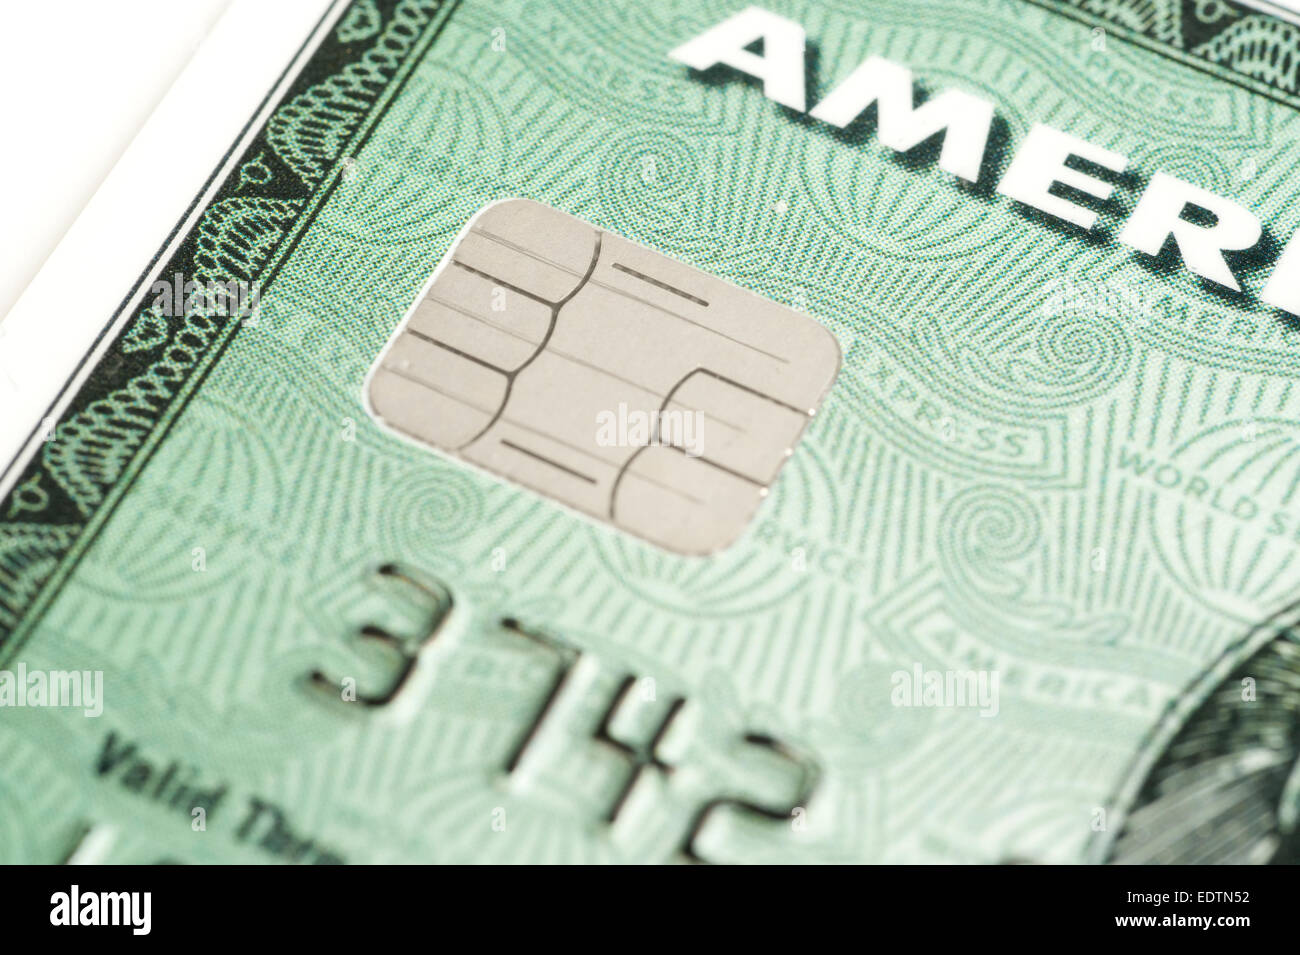 Close-up of American Express card showing integrated circuit card (ICC) chip - Stock Image